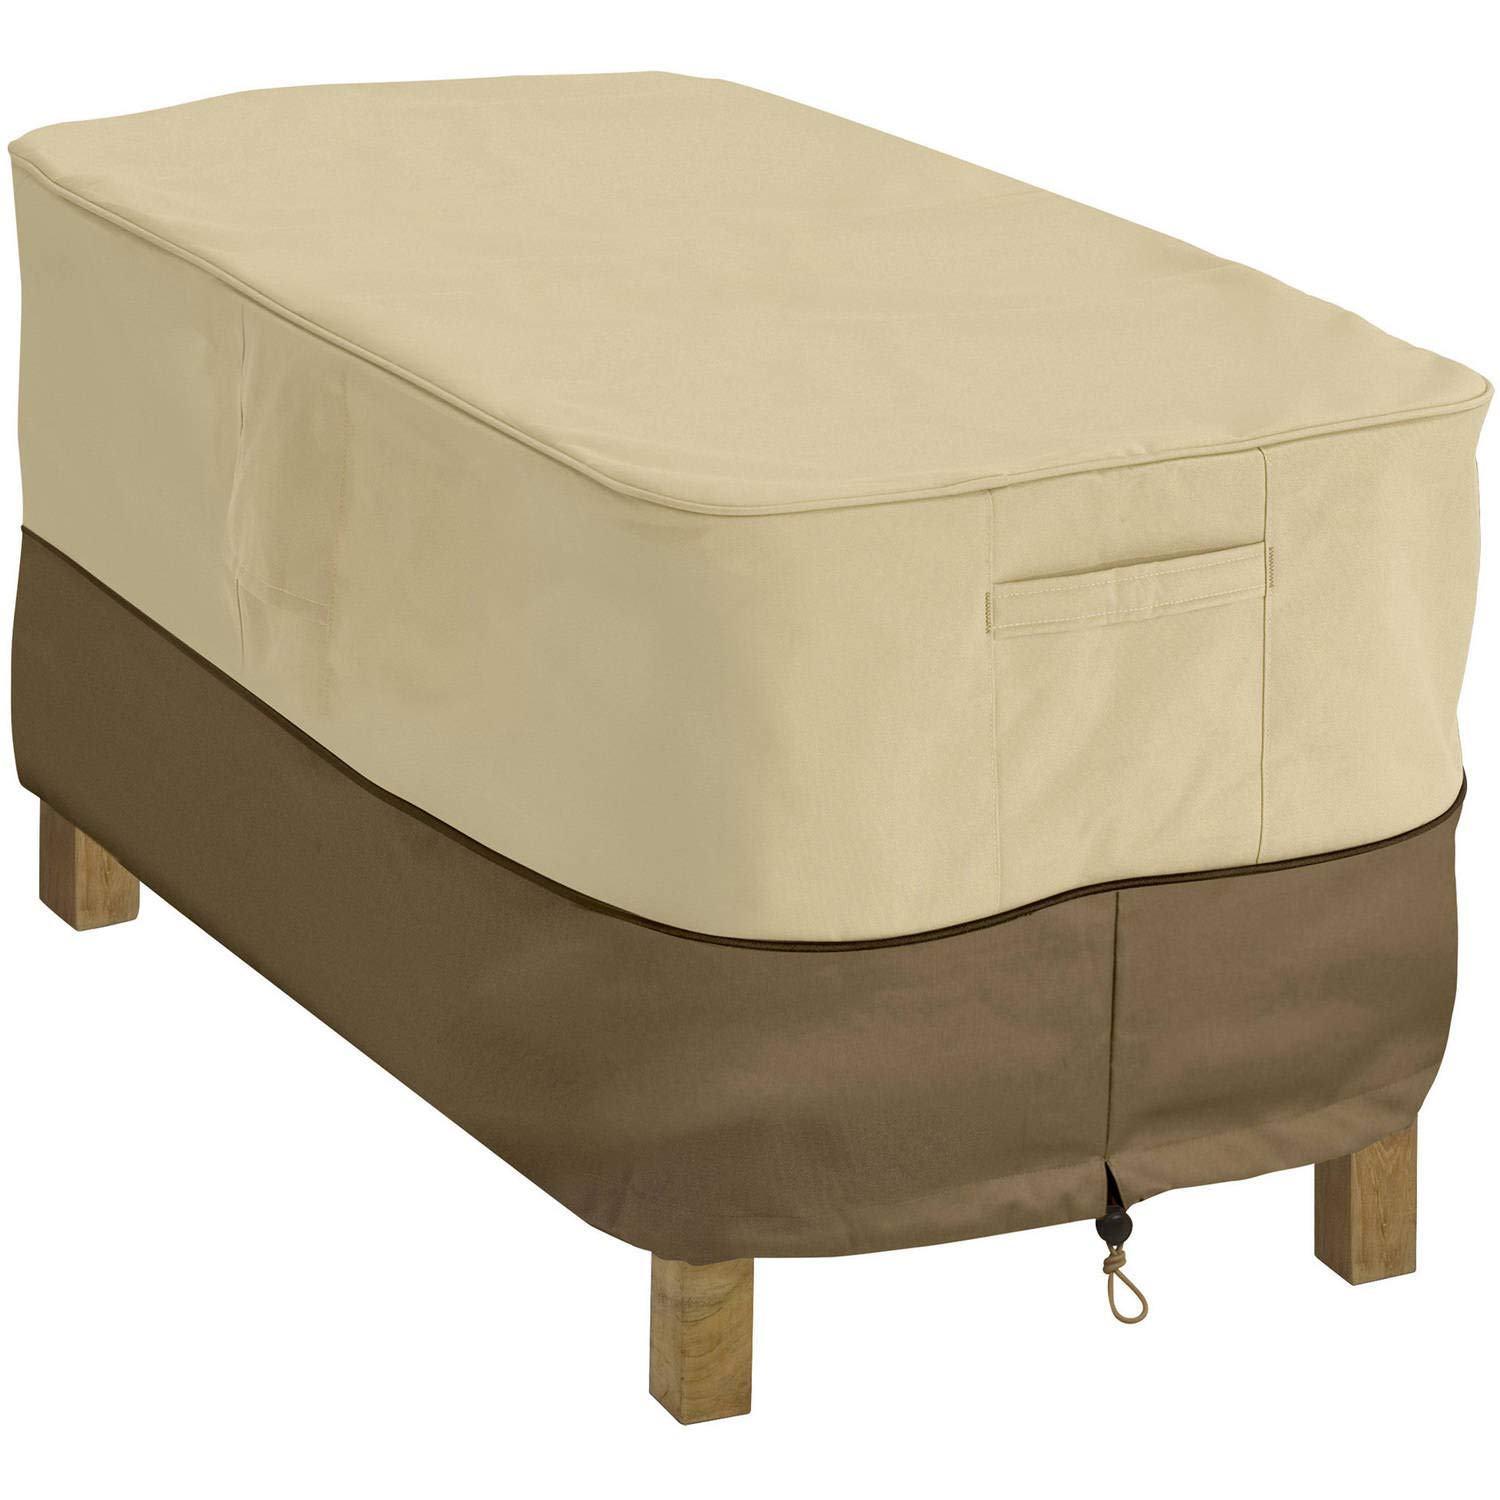 Rectangular Coffee Table Cover, Fits Tables 48''L x 25''W Rectangular Coffee Table Cover, Fits Tables 48''L x 25''W